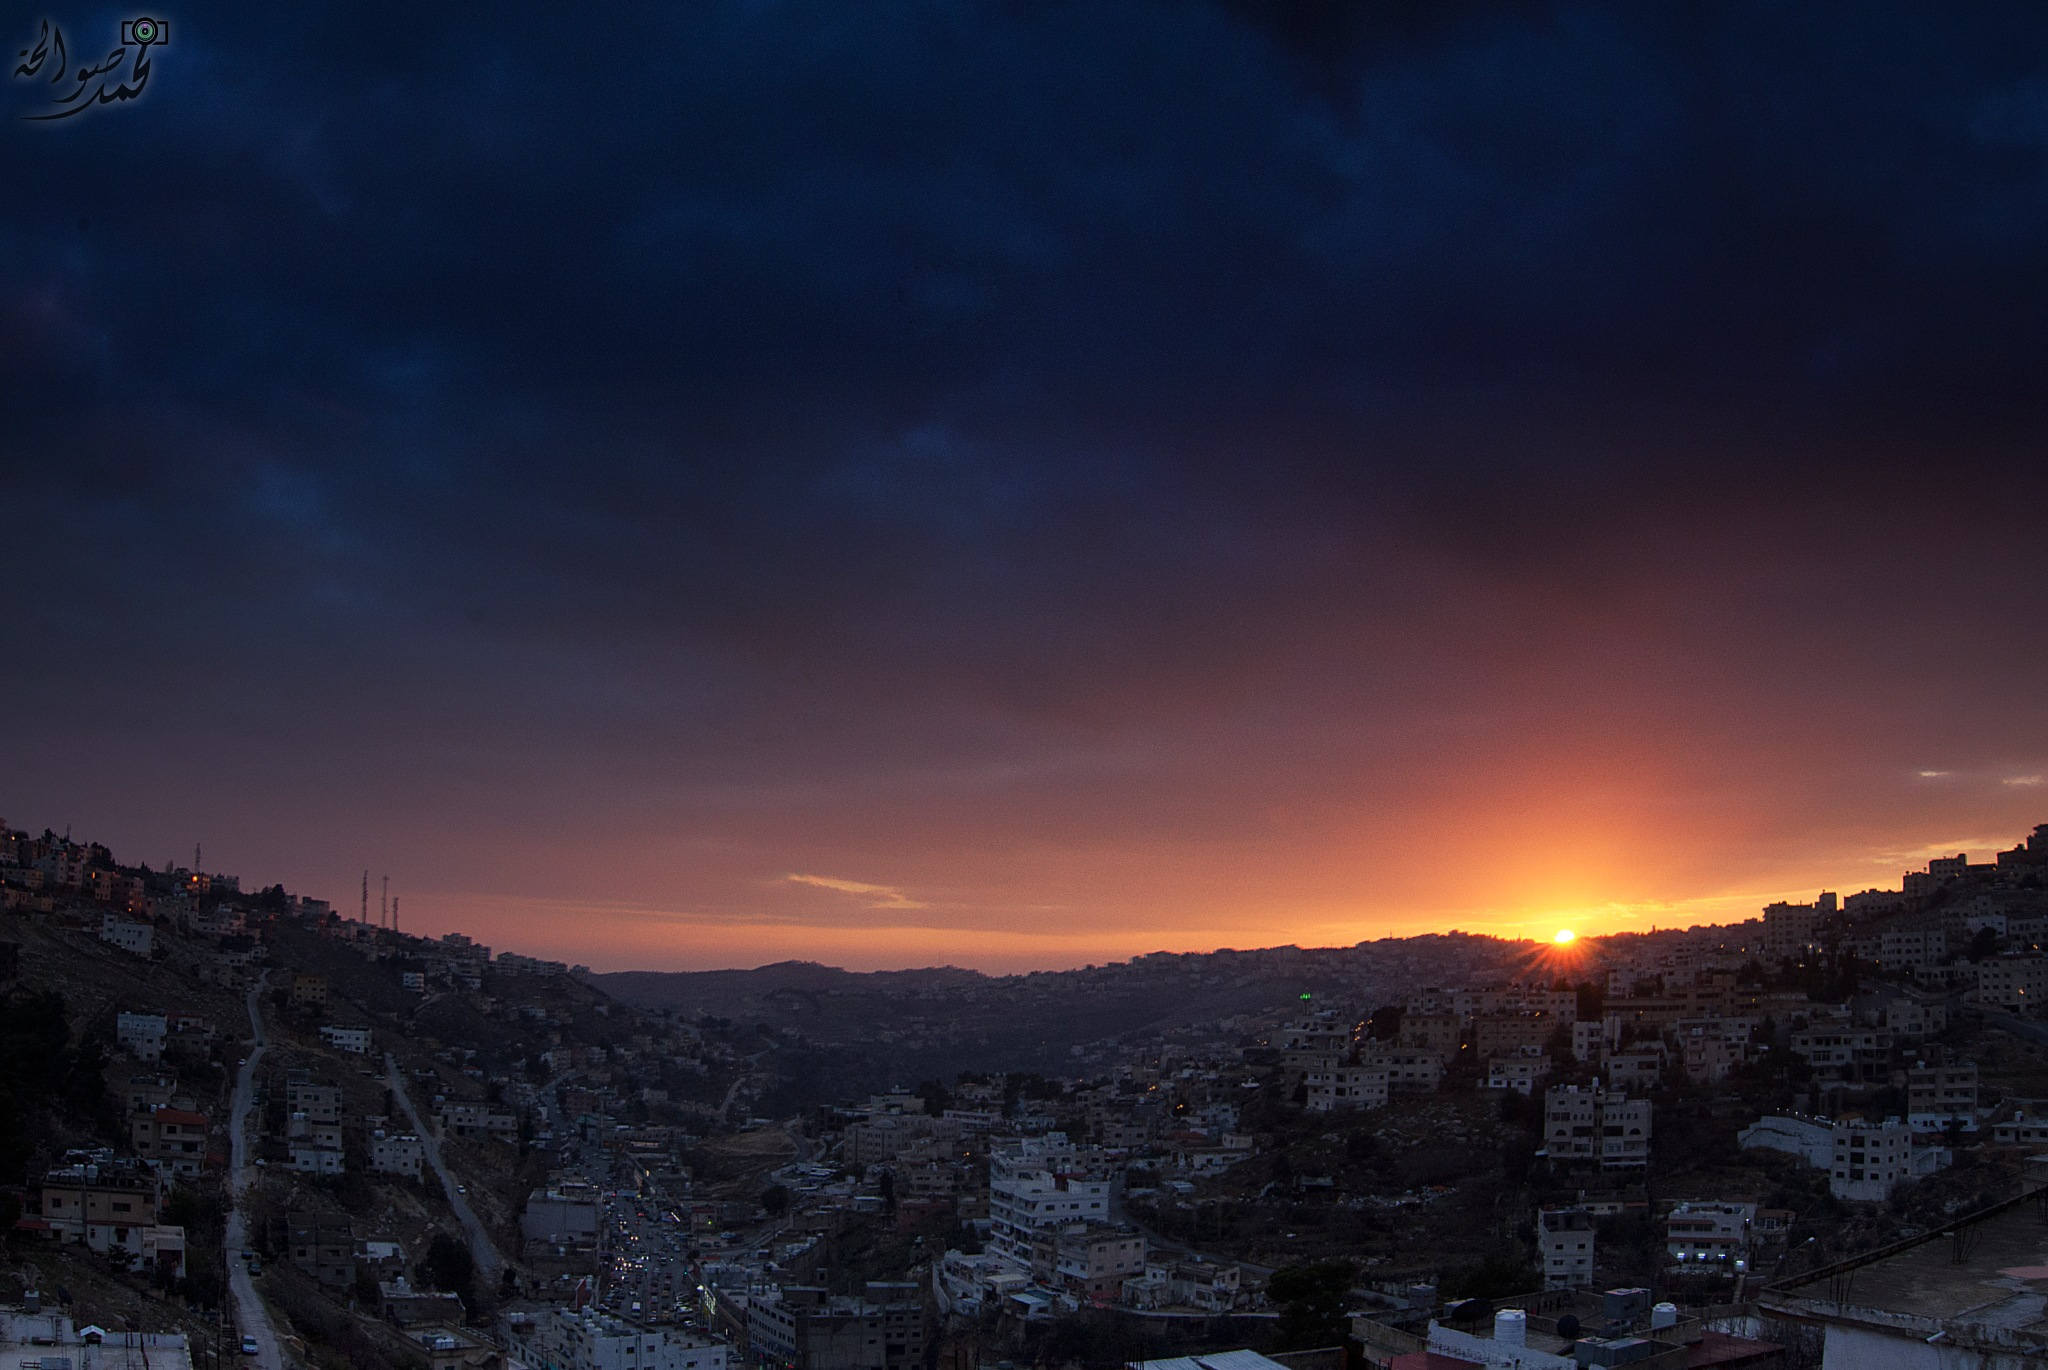 Lovely sunset by Mohammad Sawalha